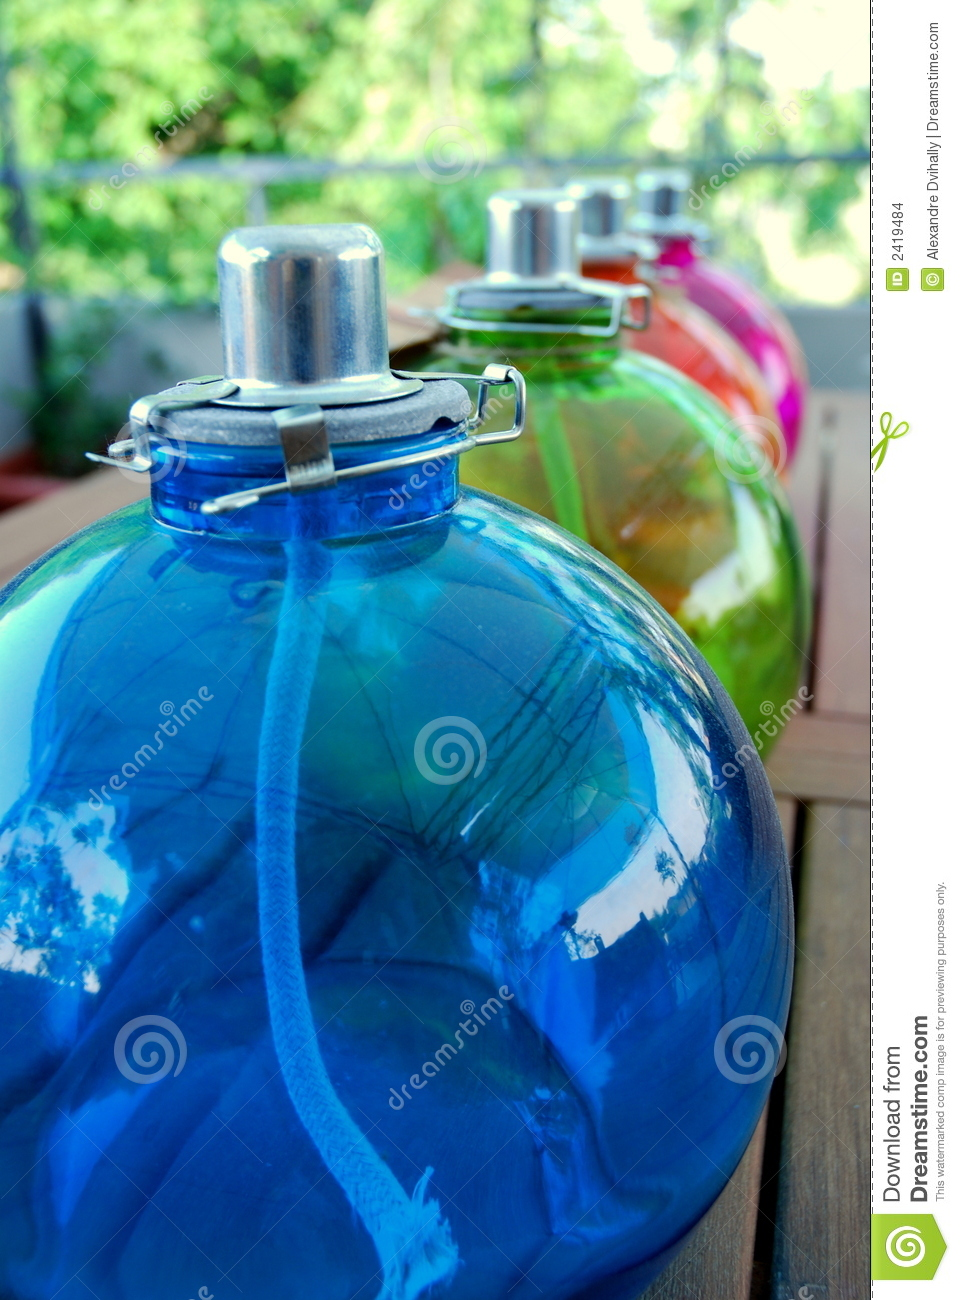 New 480 Oil Lamps Outside Oil Lamps